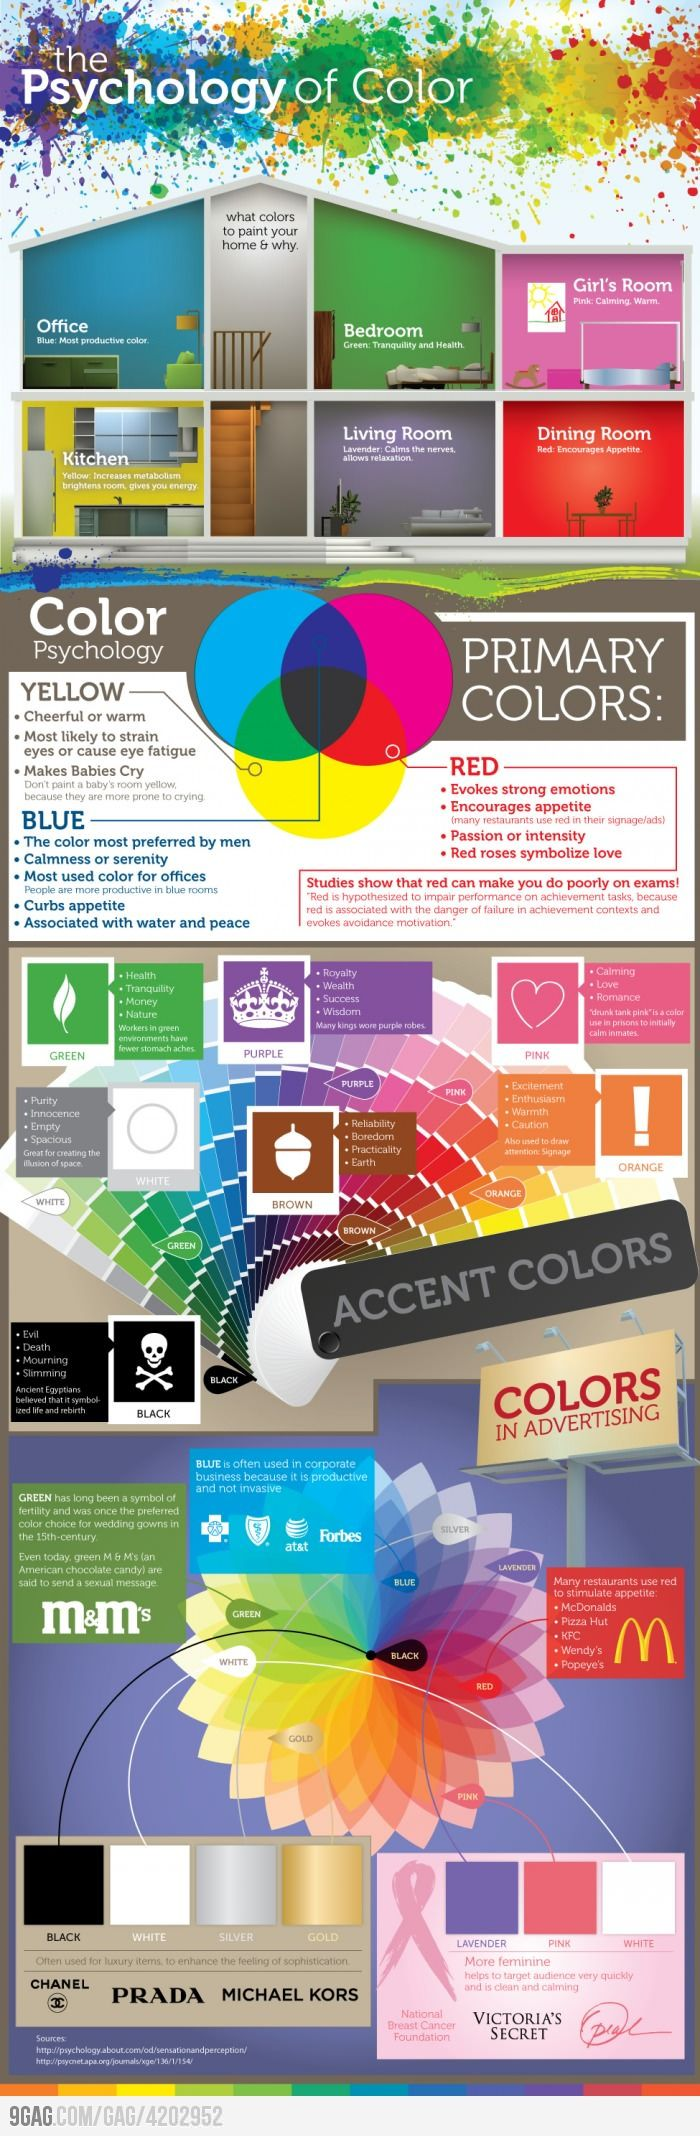 The-Psychology-Of-Color-infographic  Find always more on http://infographicsmania.com